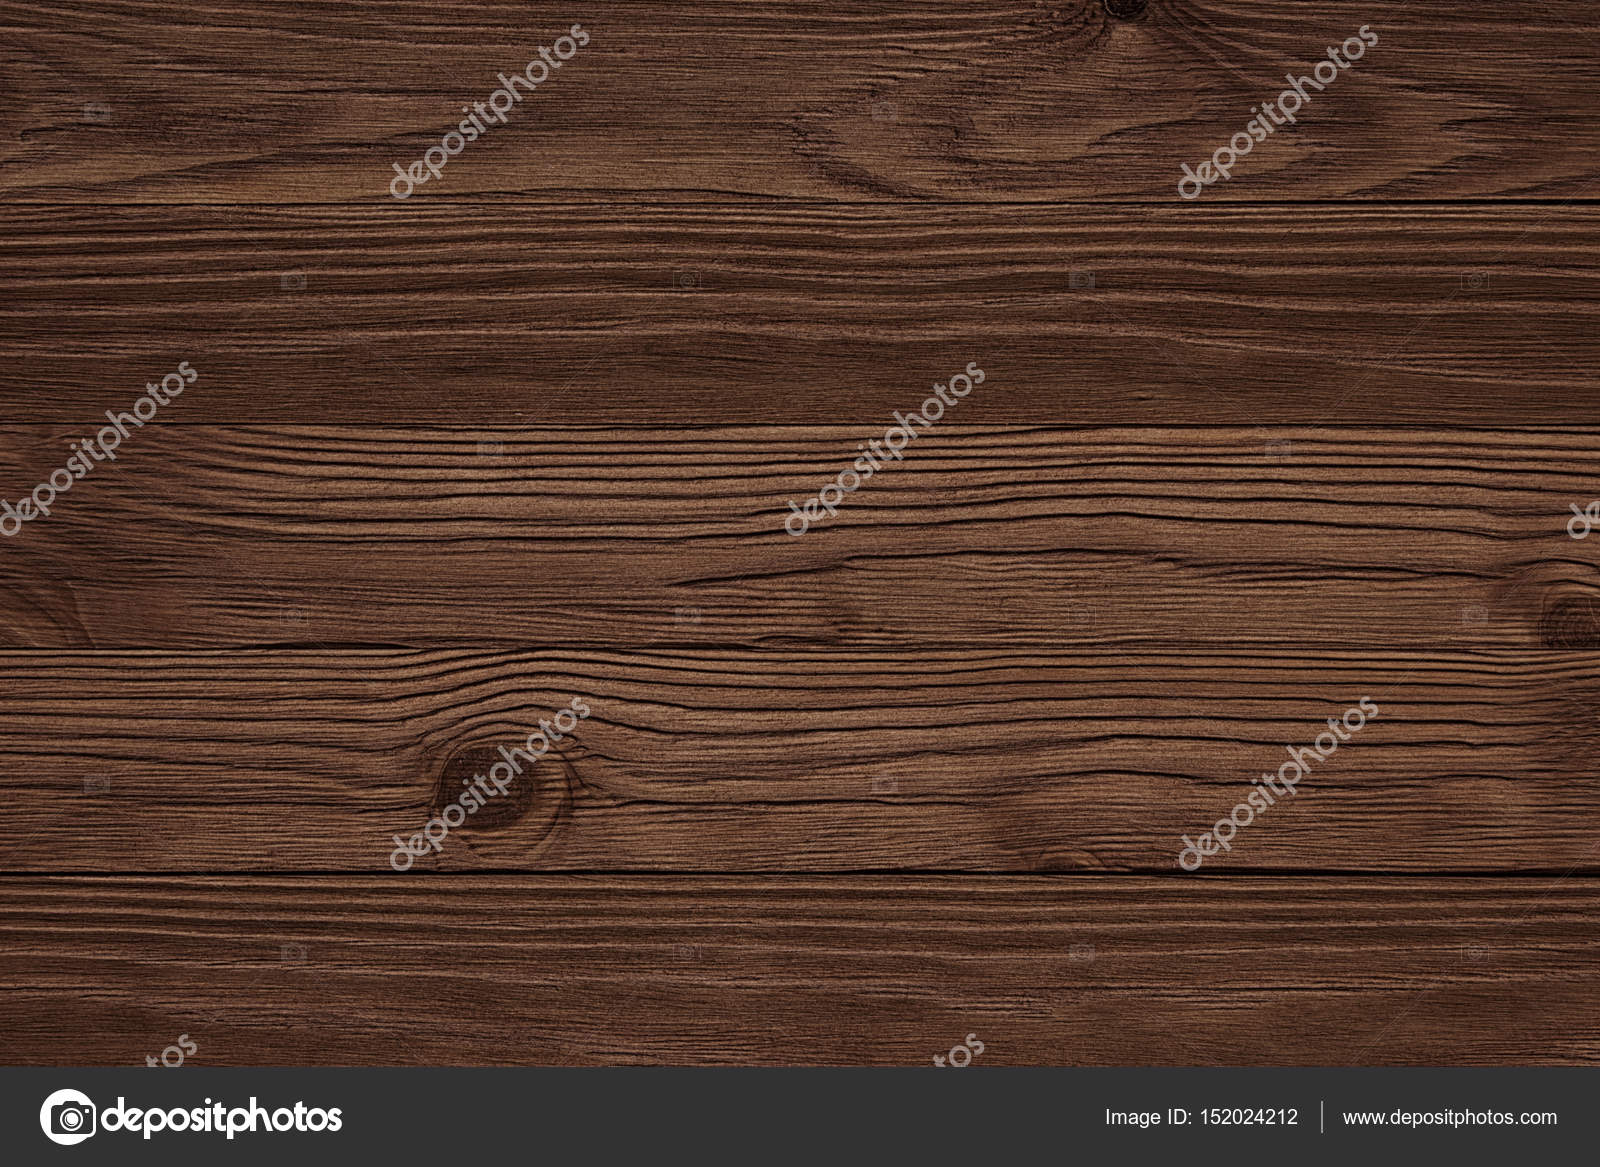 Dark Brown Scratched Wooden Cutting Board Wood Texture Stock Photo C Dmitr1ch 152024212